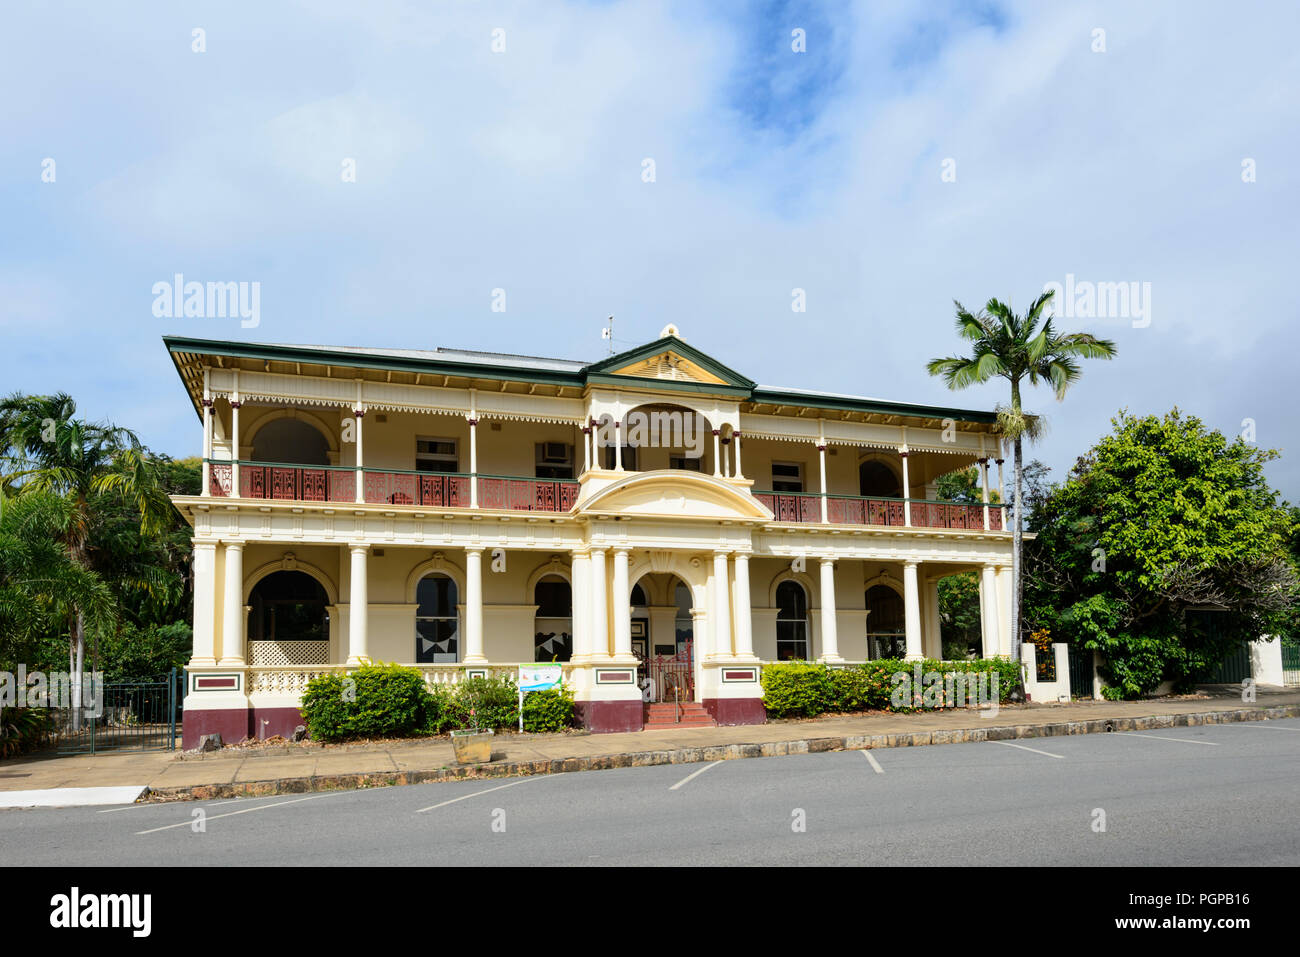 Old imposing colonial building in Cooktown, Far North Queensland, FNQ, QLD, Australia - Stock Image